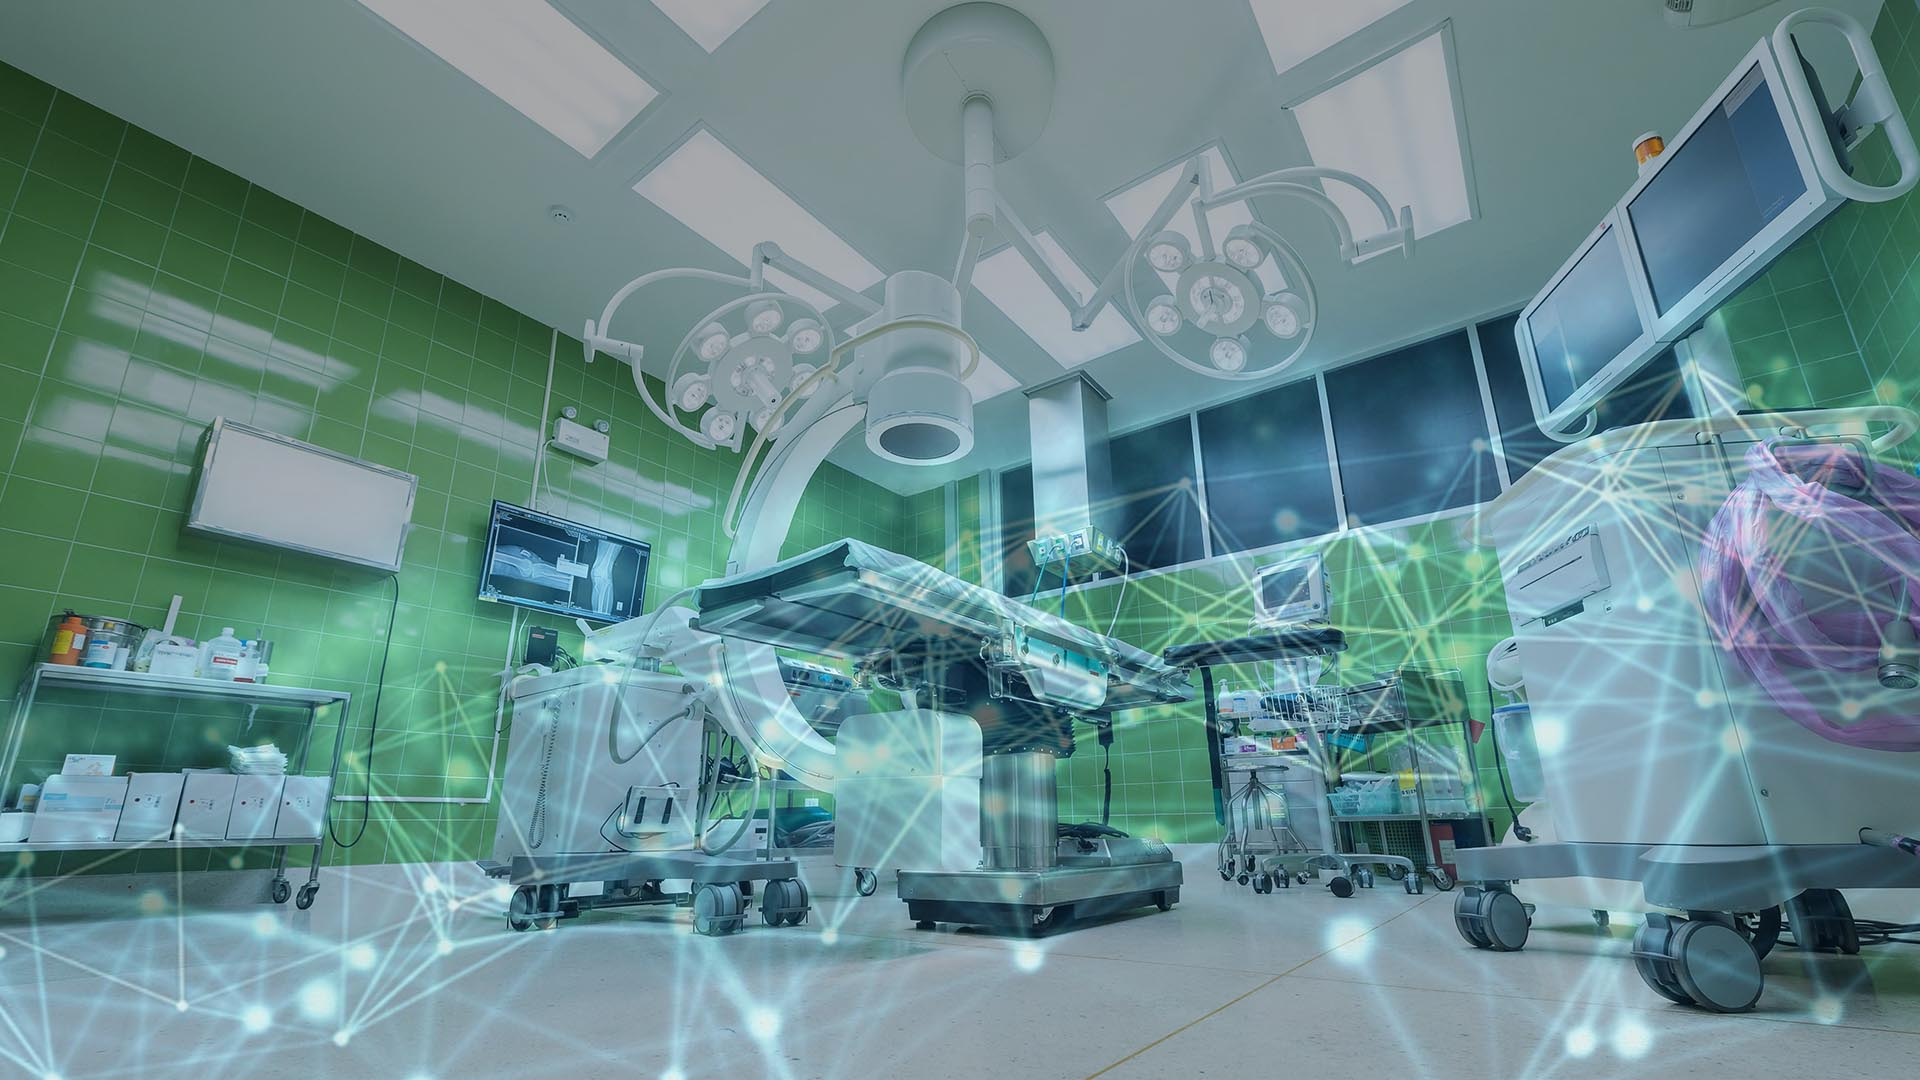 Turning to connected workflows to solve hospital administration woes